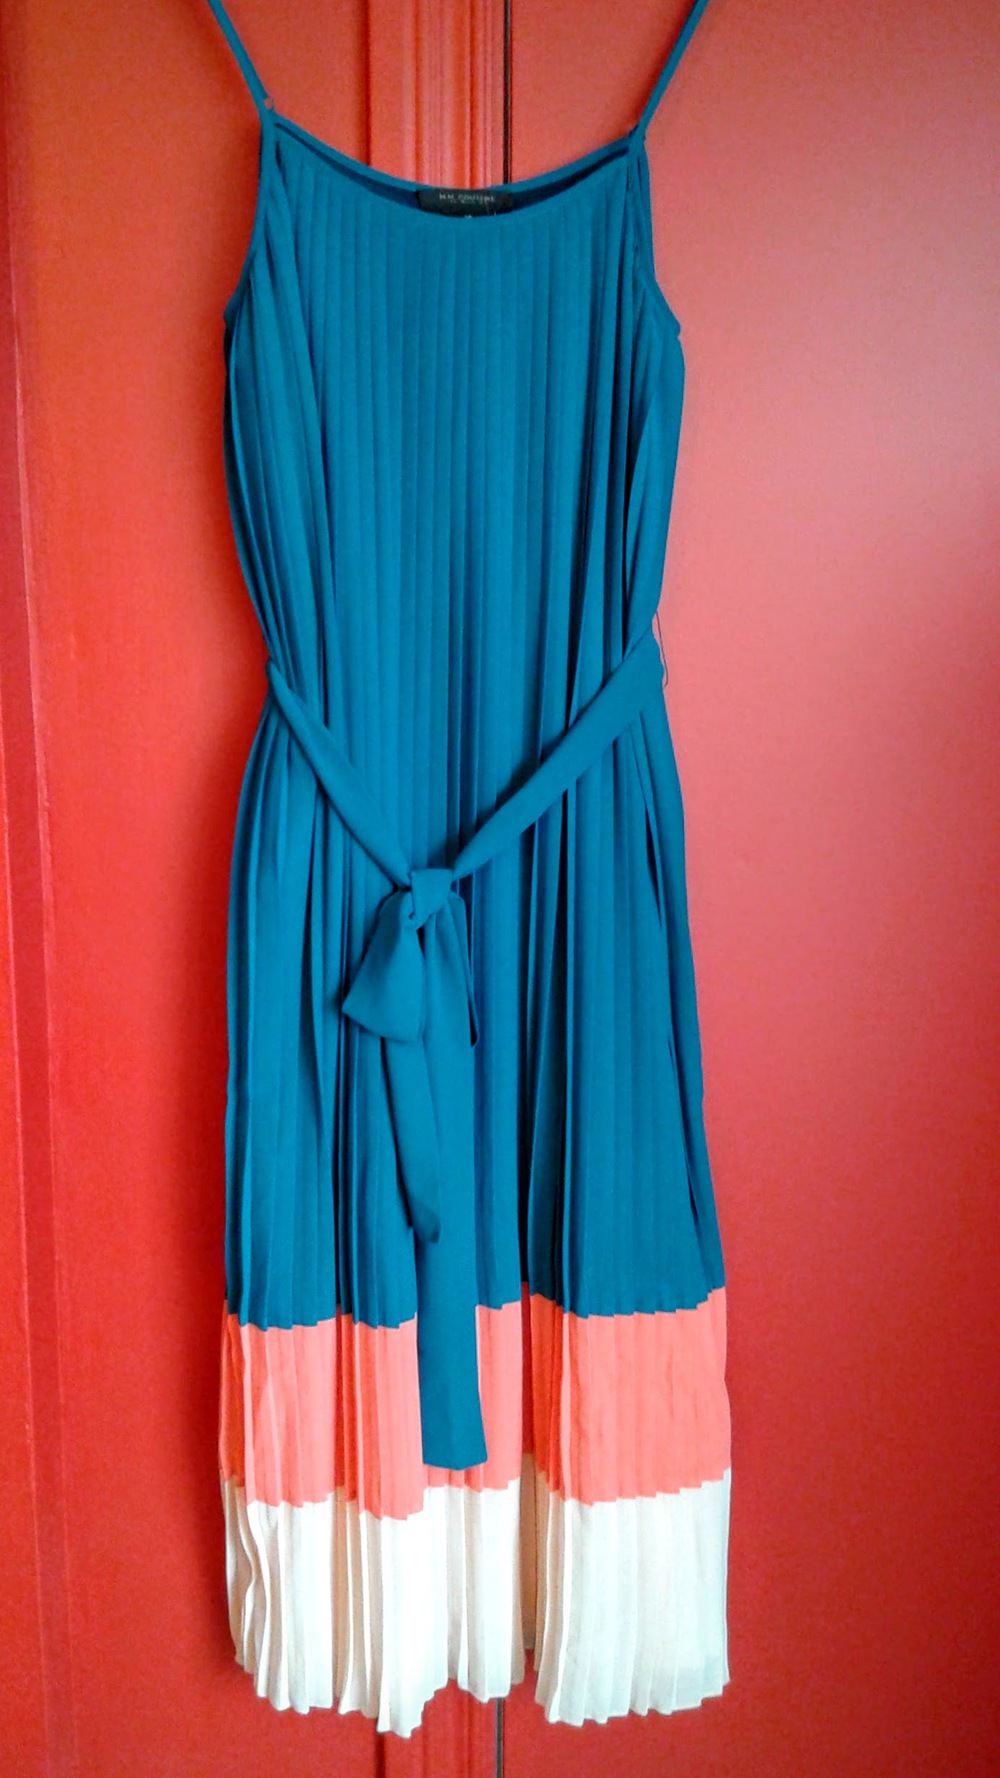 M M Couture  dress; Size xs, $62